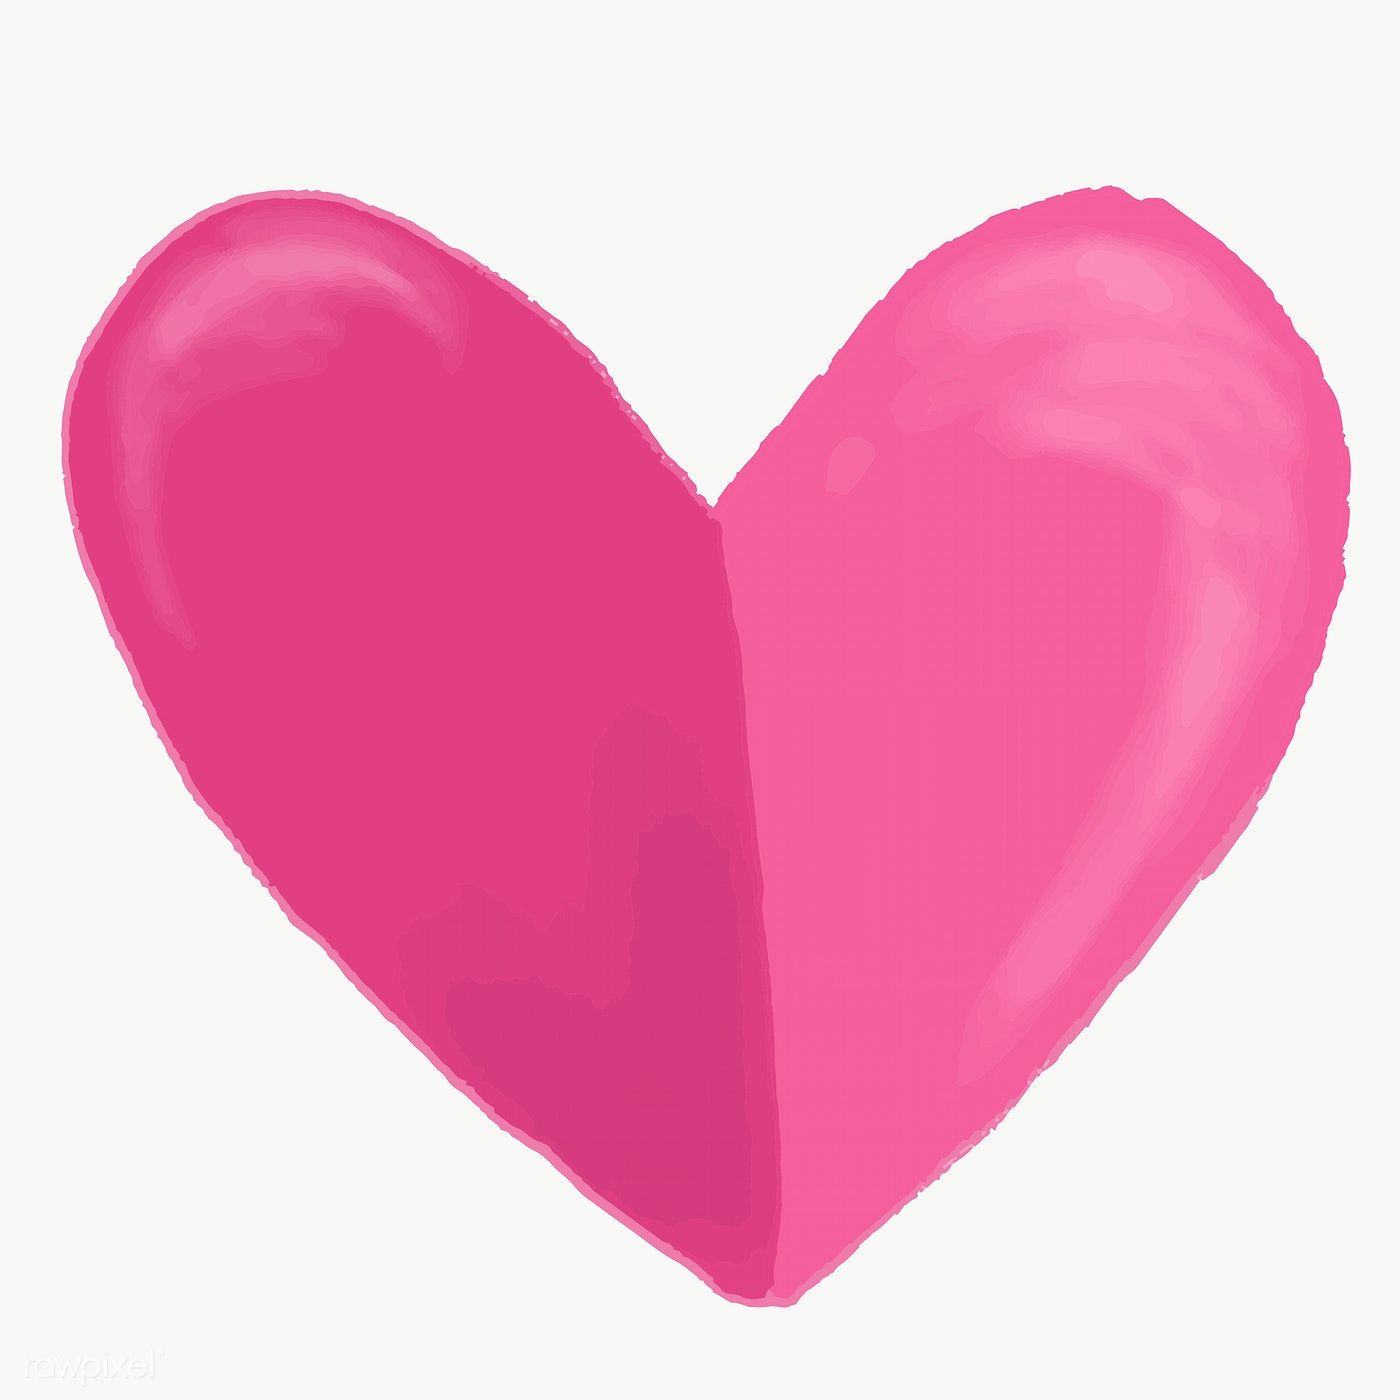 Cute Hand Drawn Pink Heart Element Free Image By Rawpixel Com Mac How To Draw Hands Pink Heart Stock Images Free